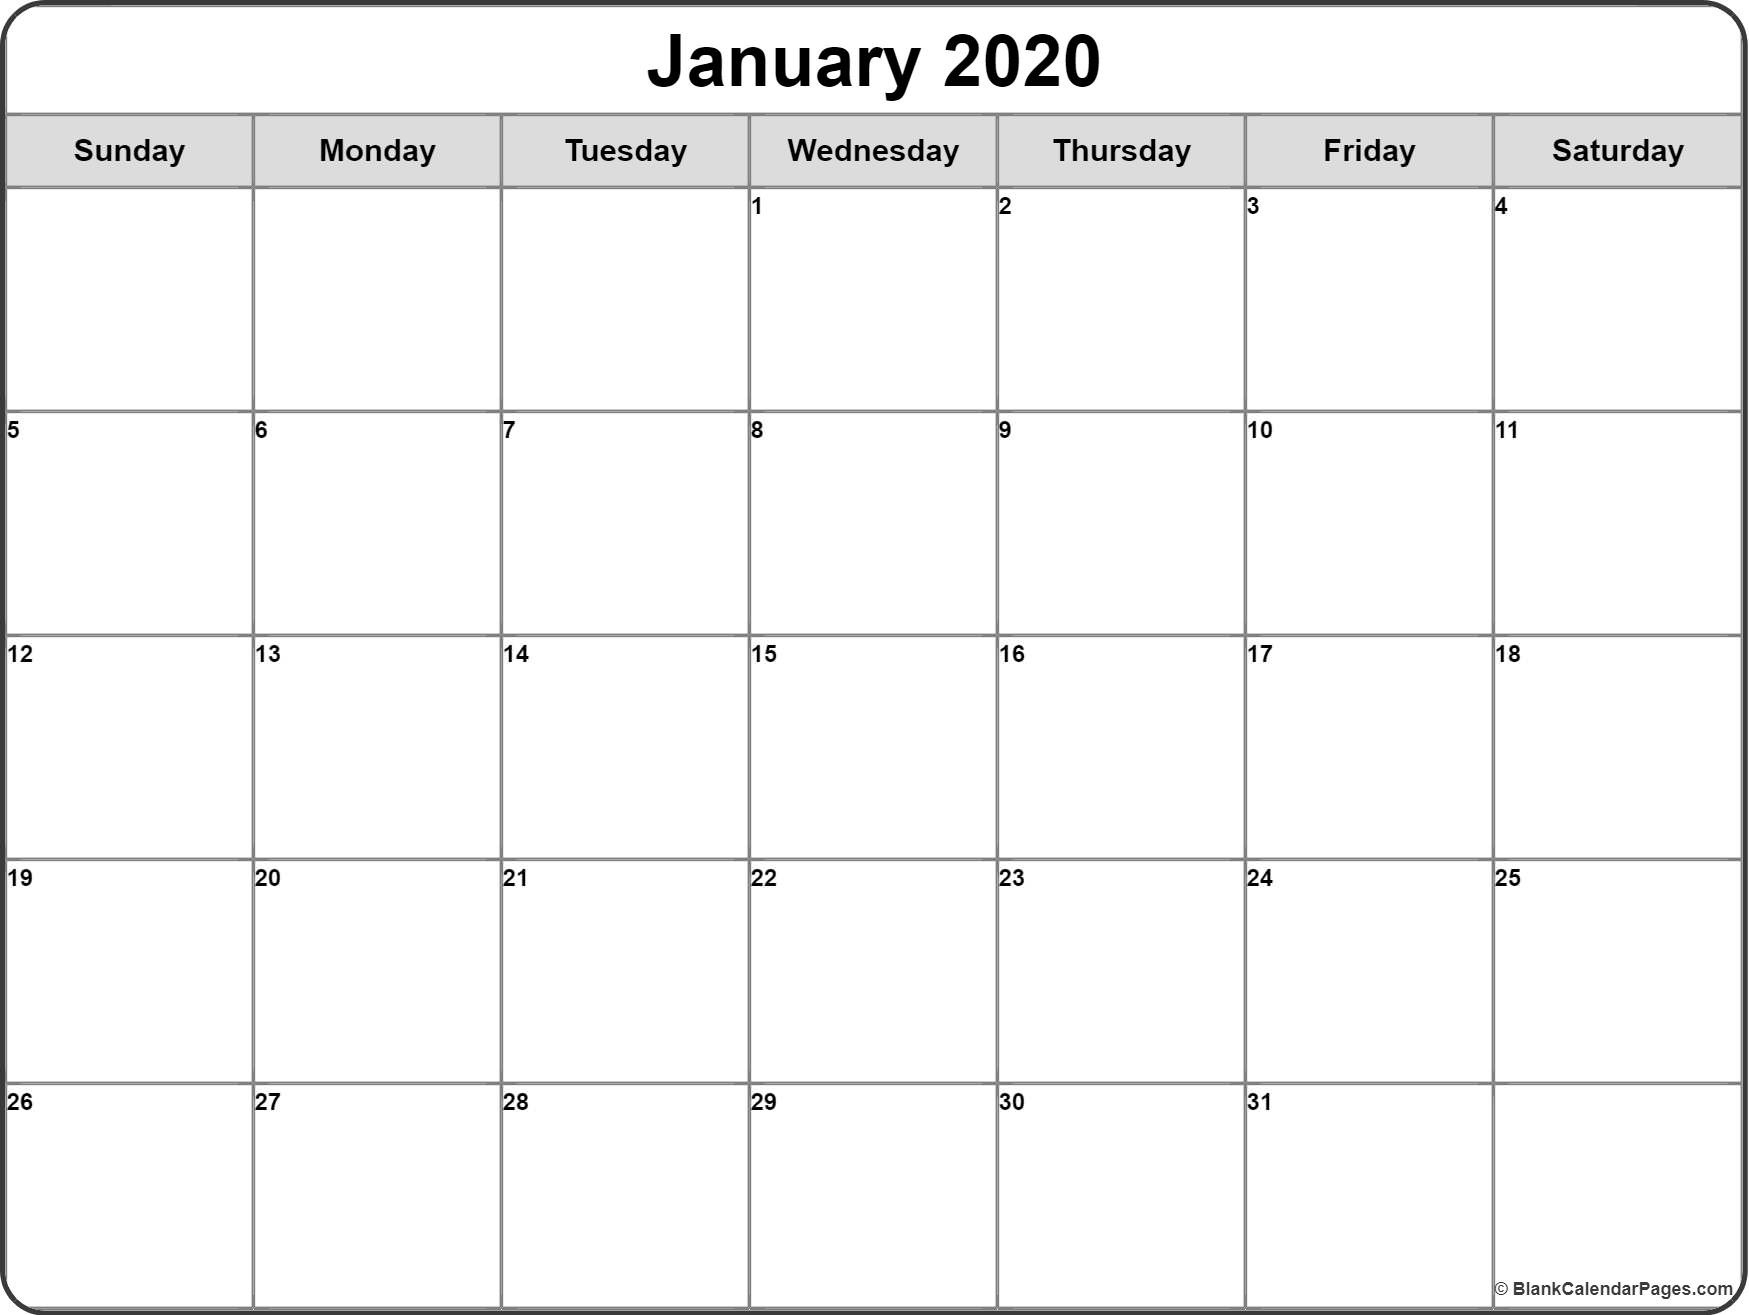 January 2020 Calendar | Free Printable Monthly Calendars-Free Printable 2 Page Monthly Calendar 2020